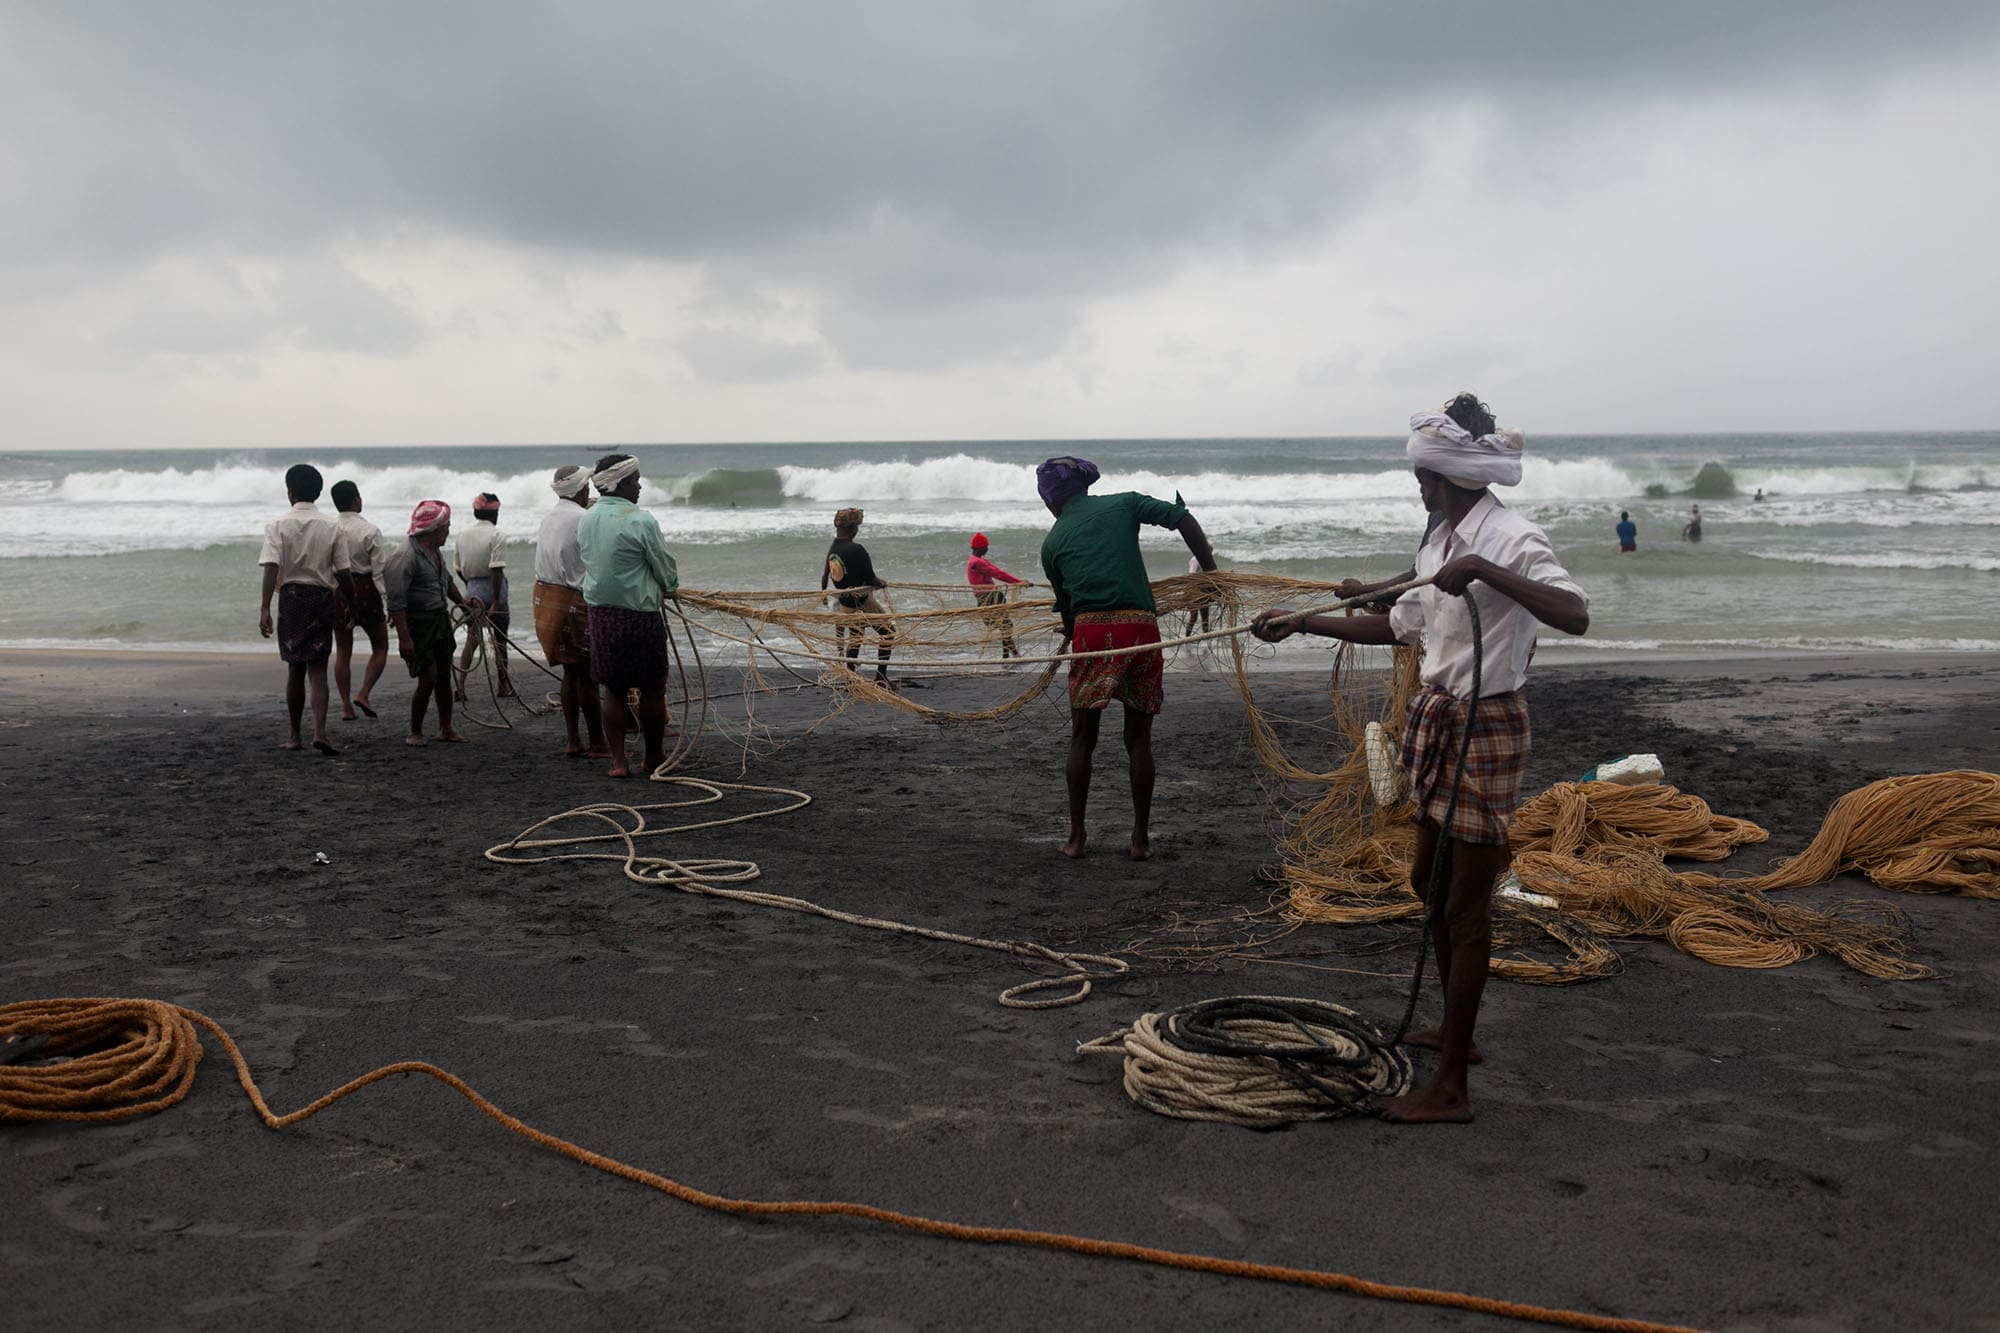 Kovalam Fishermen on the beach in India